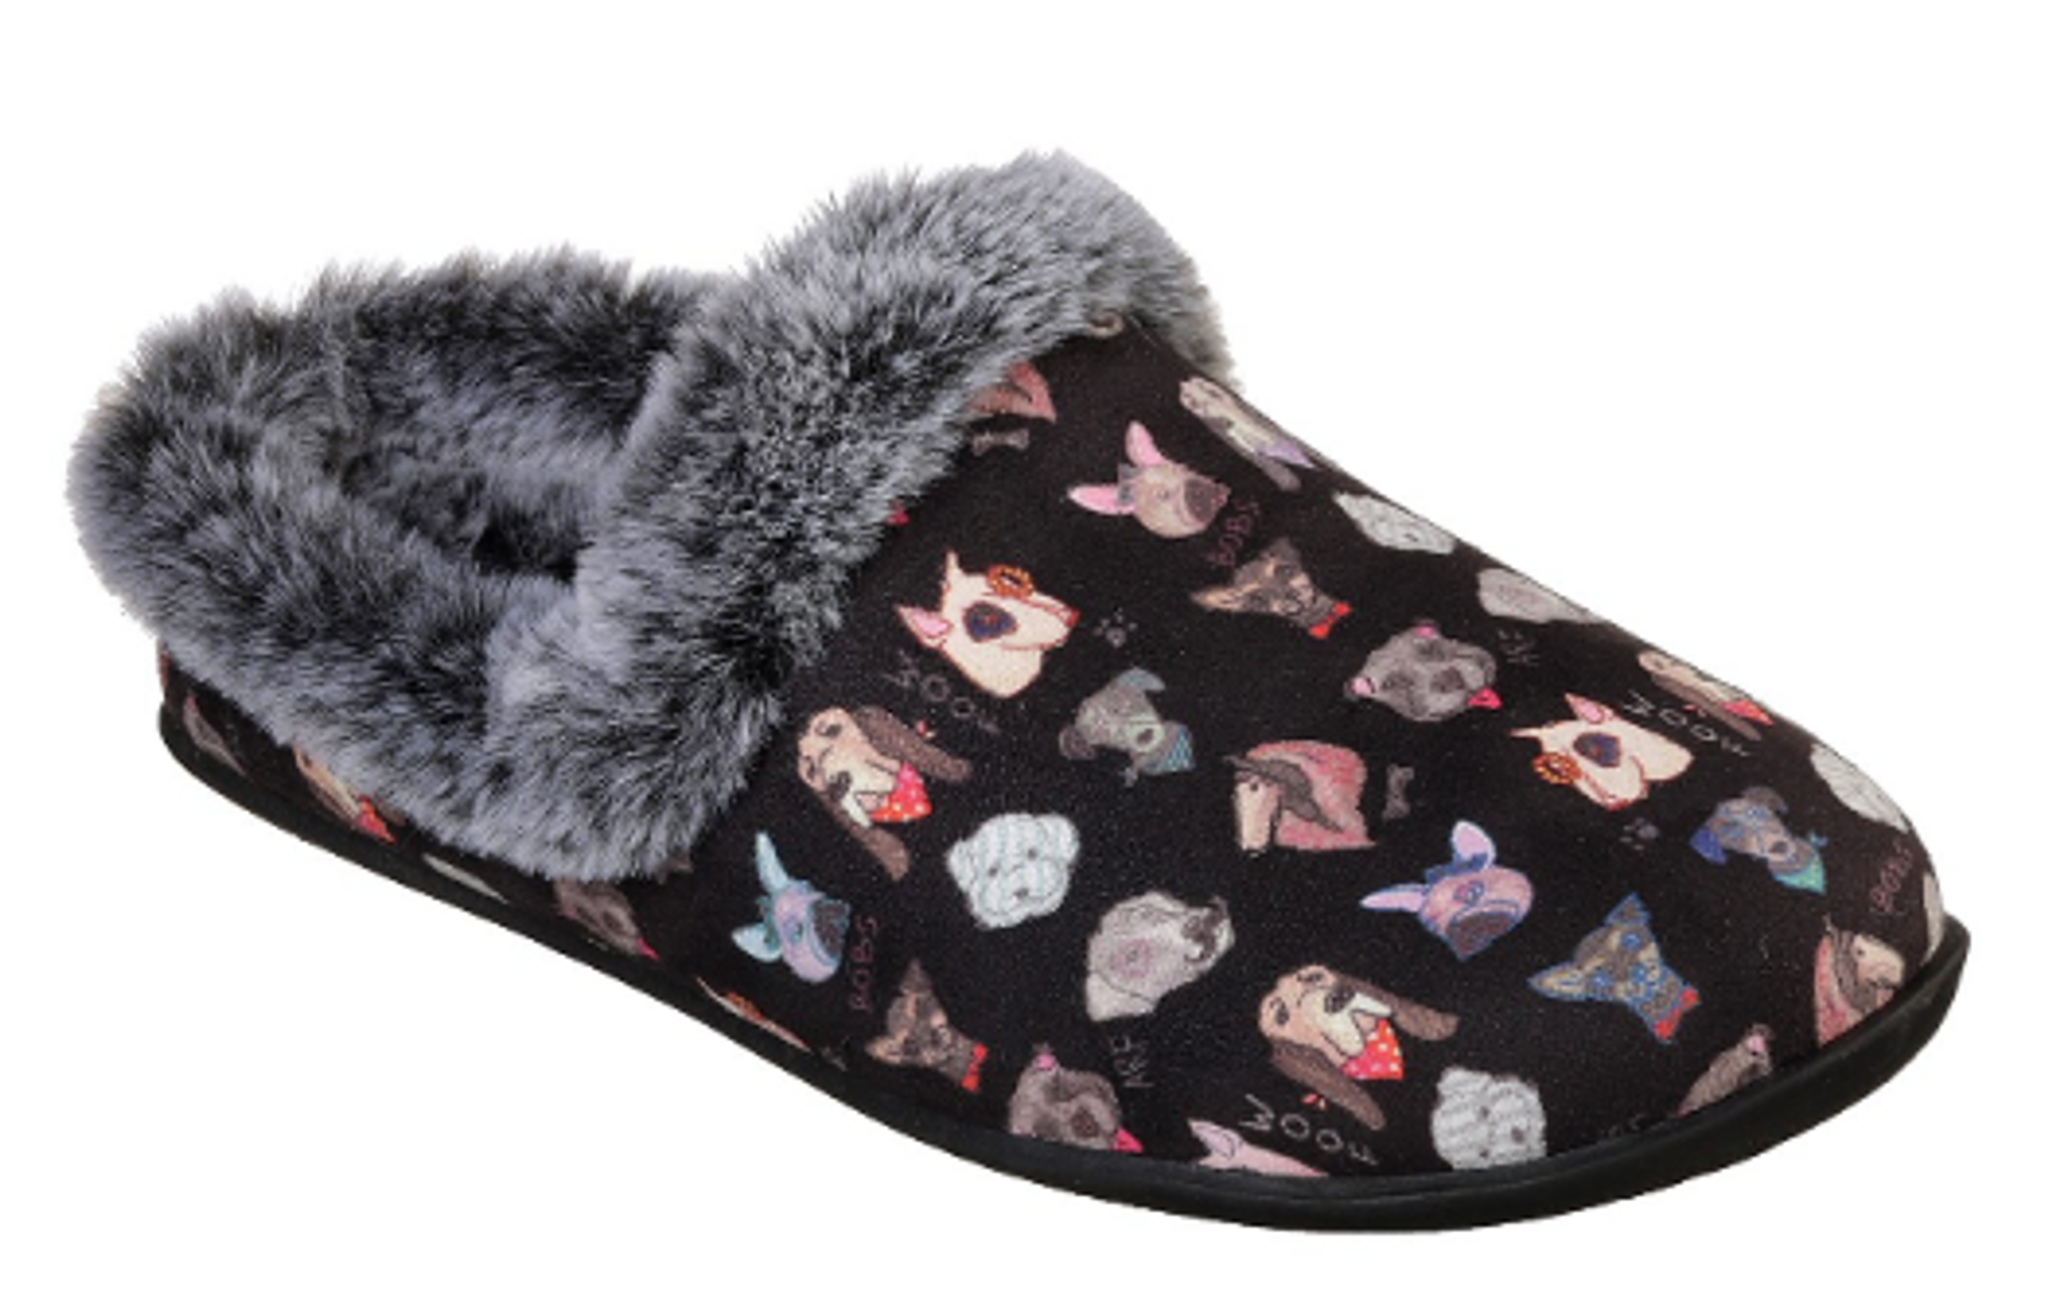 840389930f3e5 SLIPPER CLOG DAPPER DOG (31281)